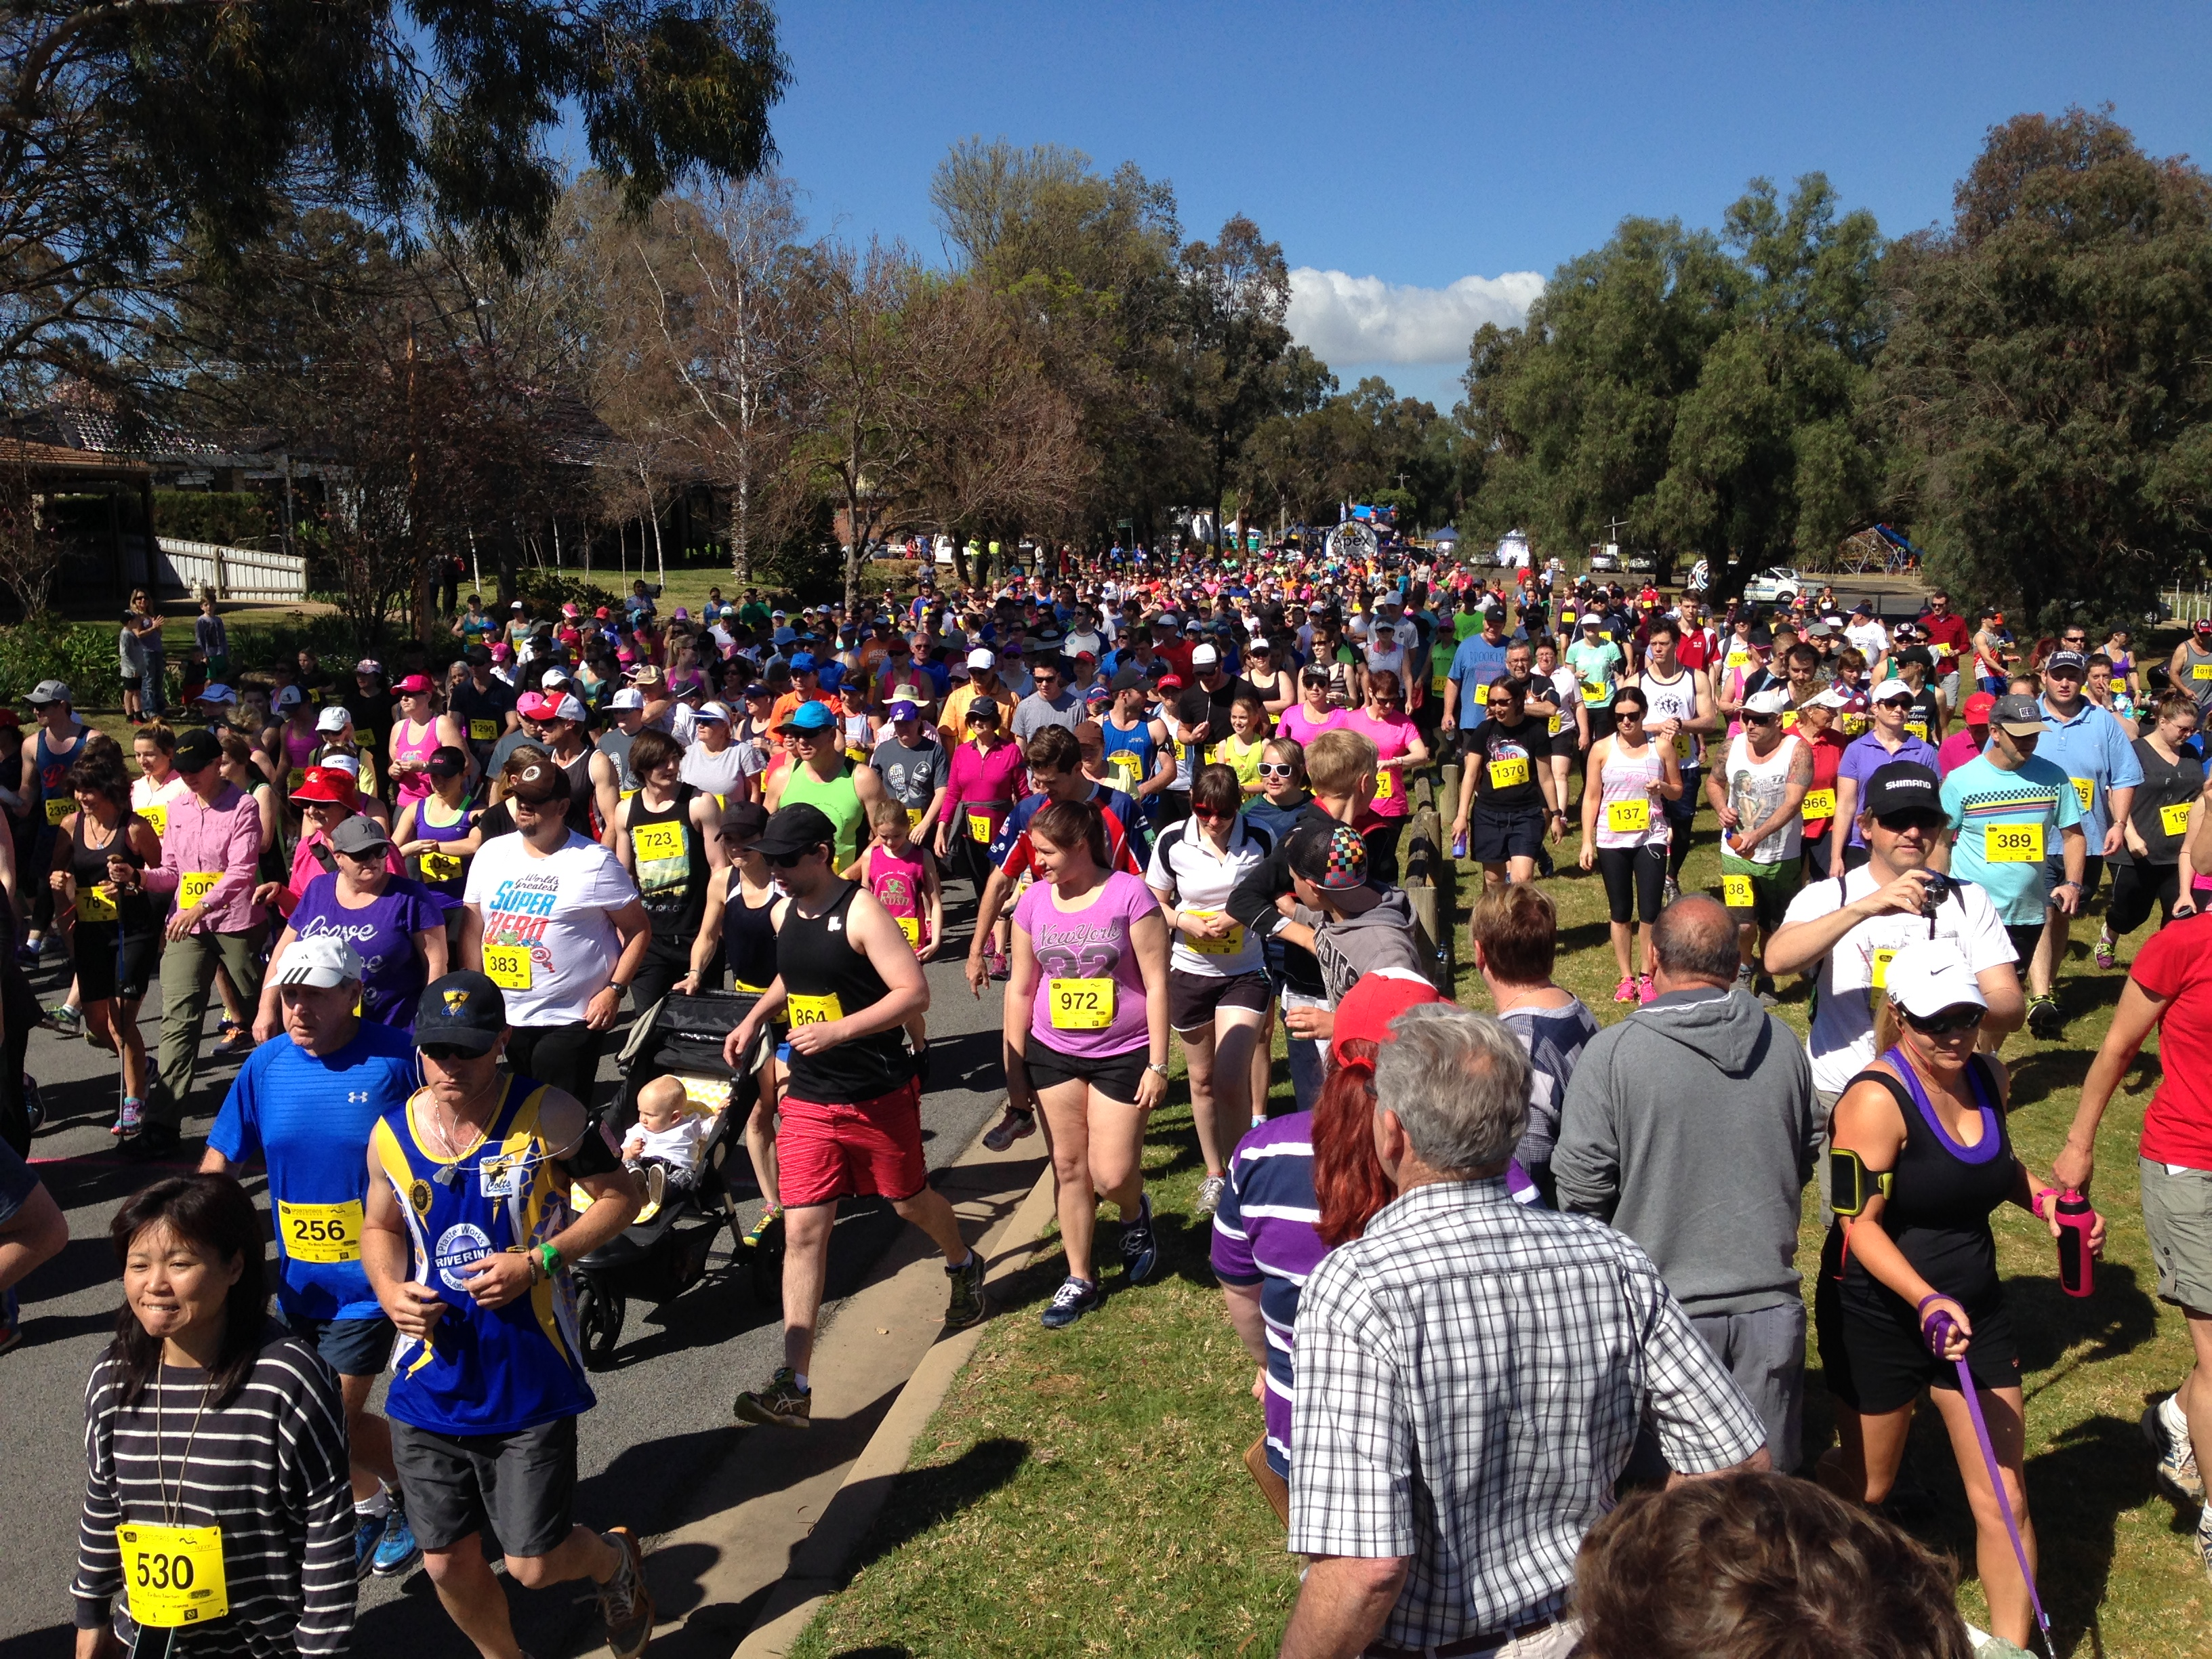 Lake to Lagoon - runners and walkers get underway